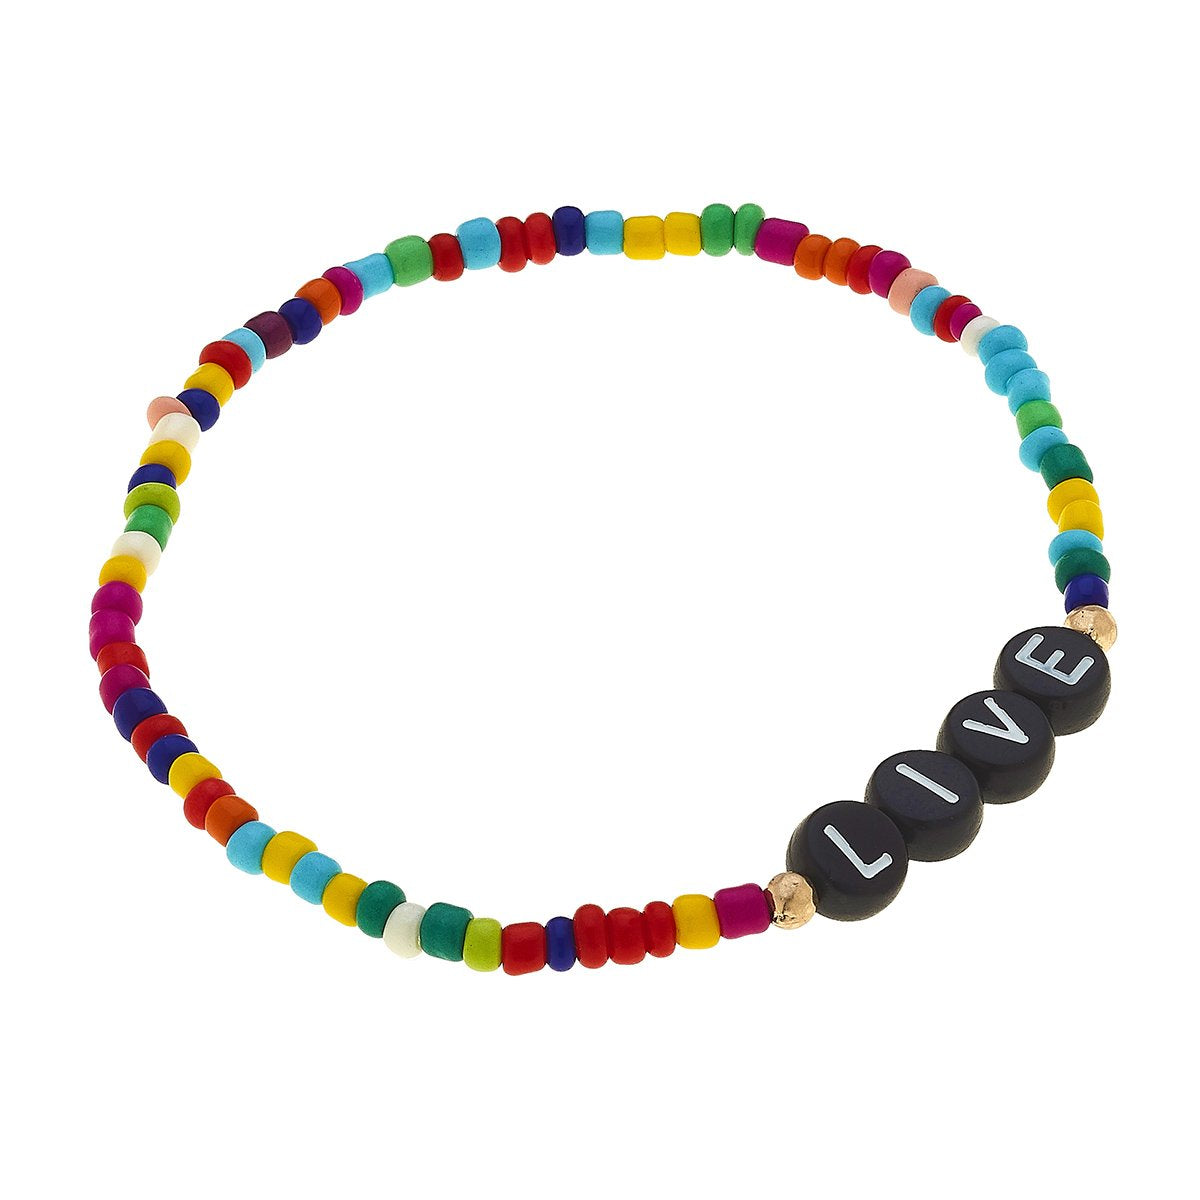 Zuri Block Letter Bracelet In Multi Seed Beads - Live